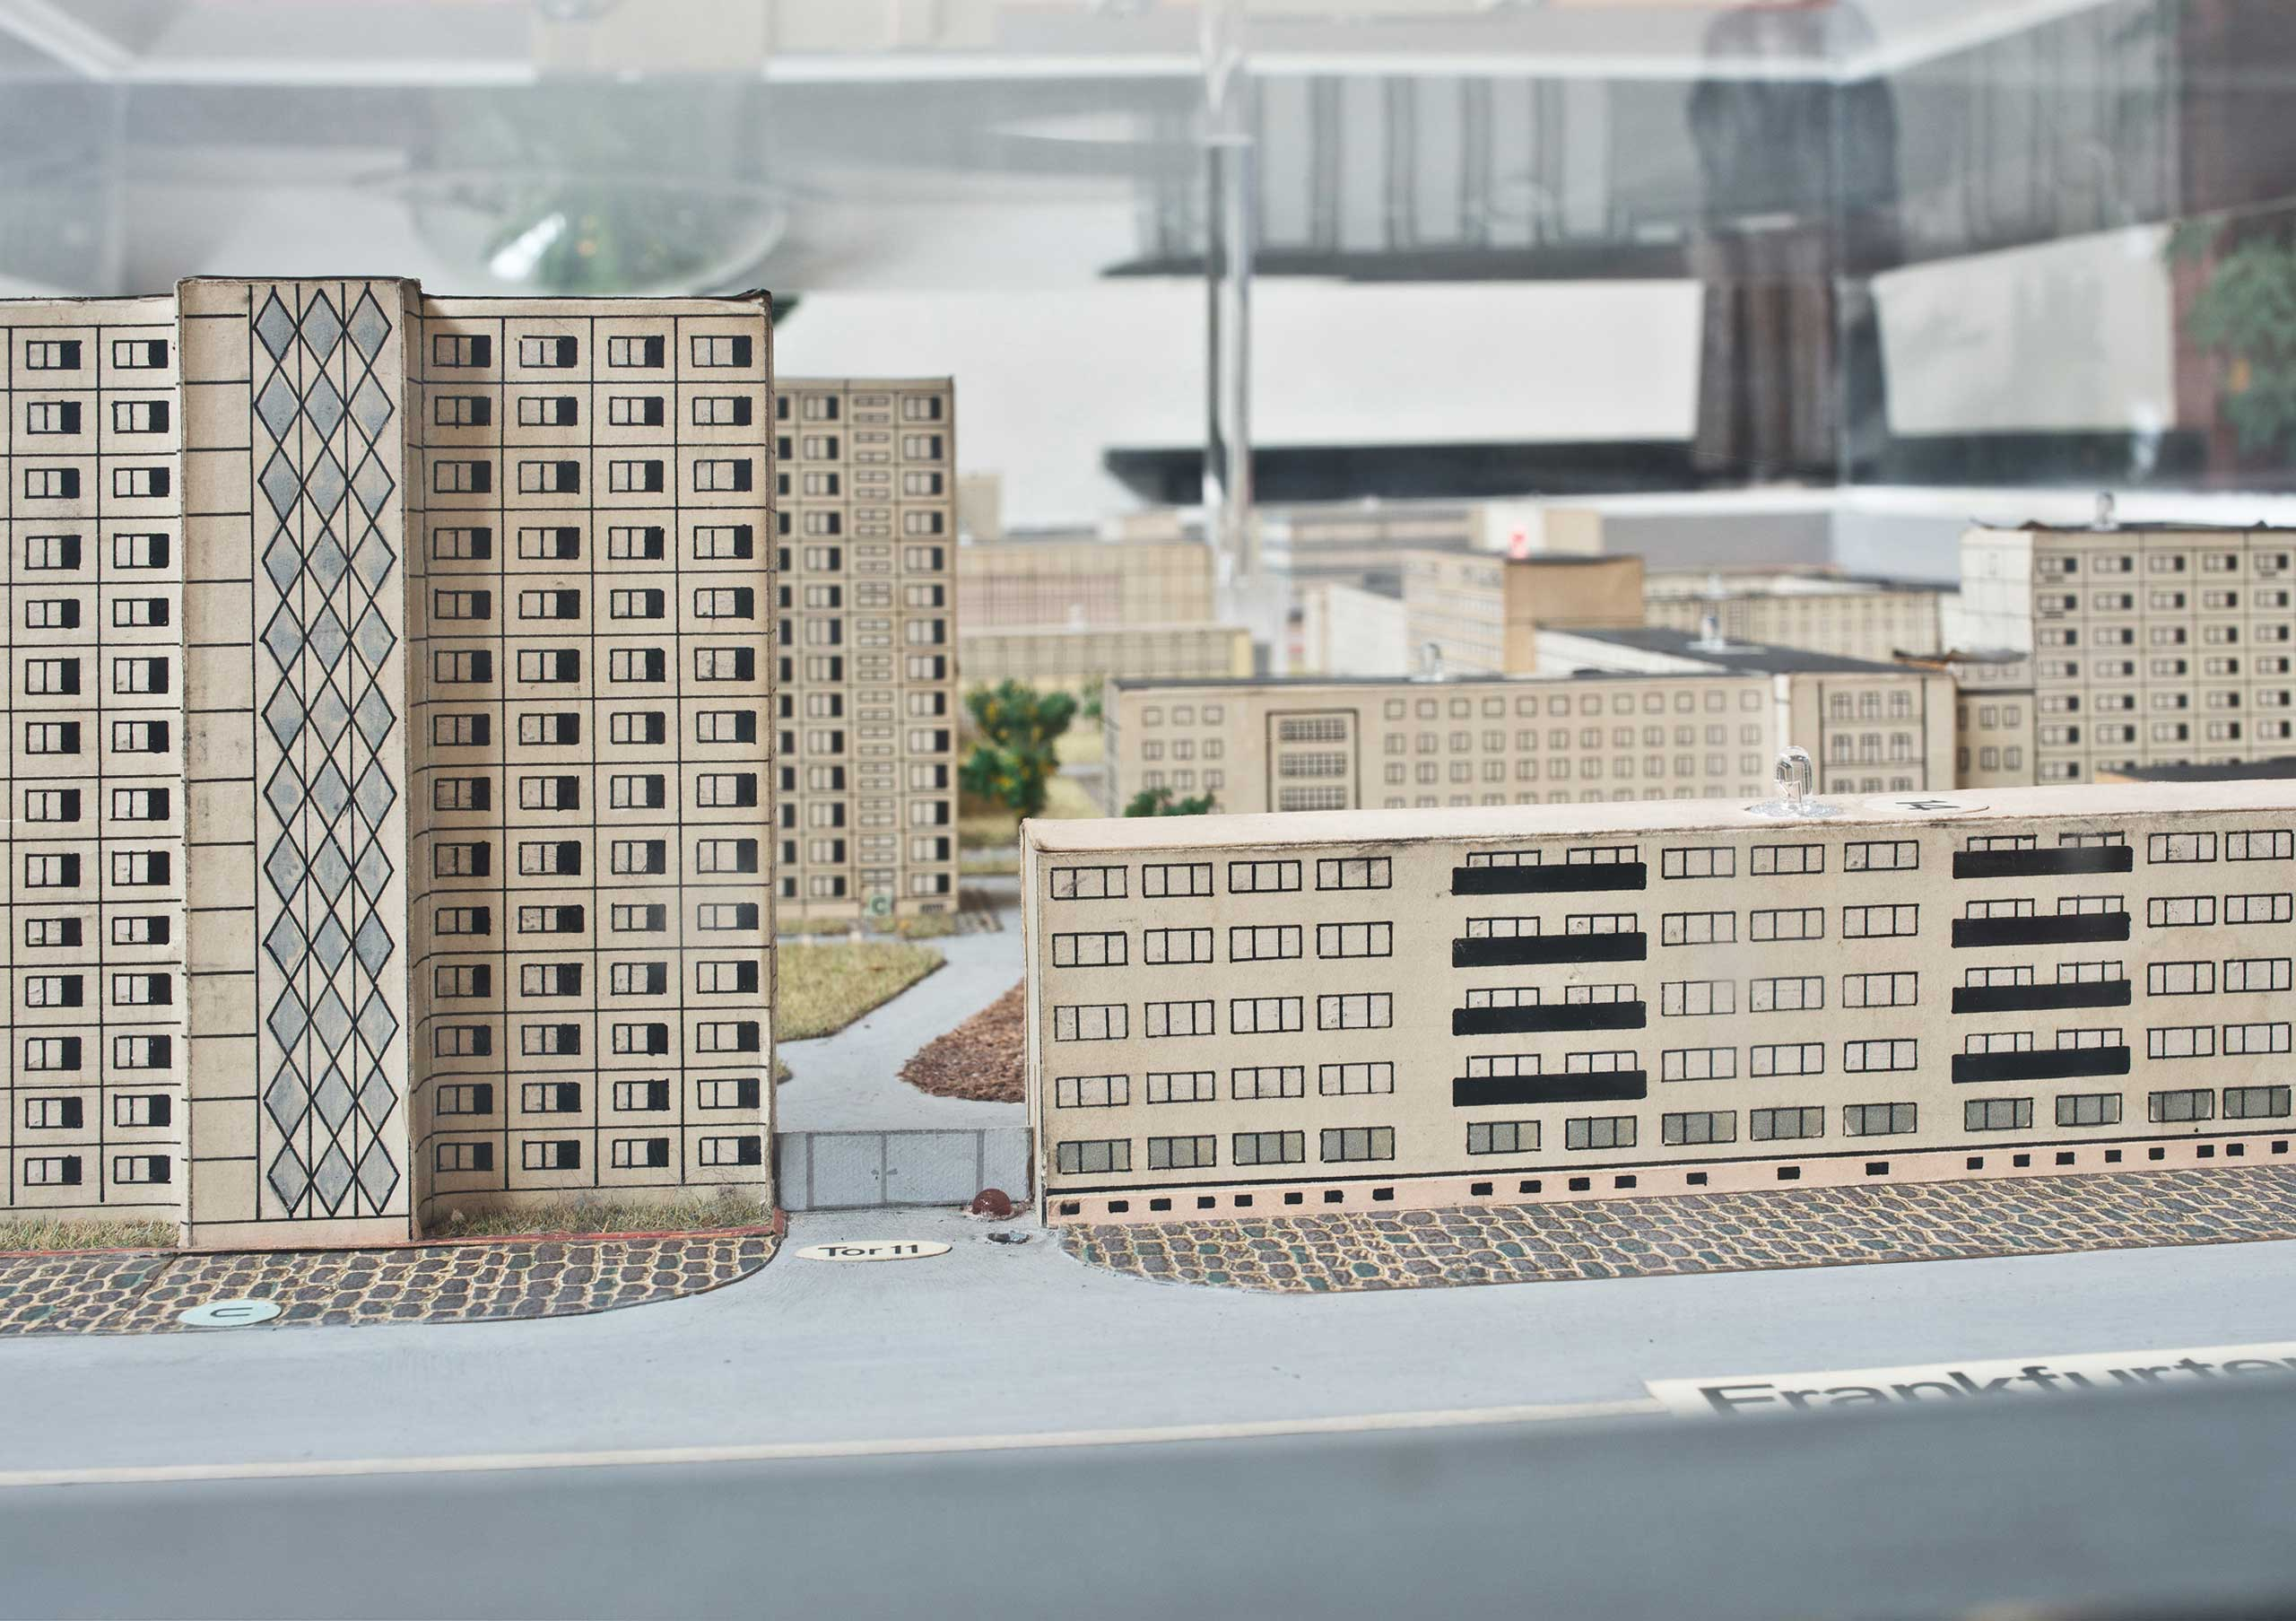 Model of the Stasi headquarters in the 1980s. This model is today in the foyer of the Stasi Museum in Normannenstraße in Berlin.